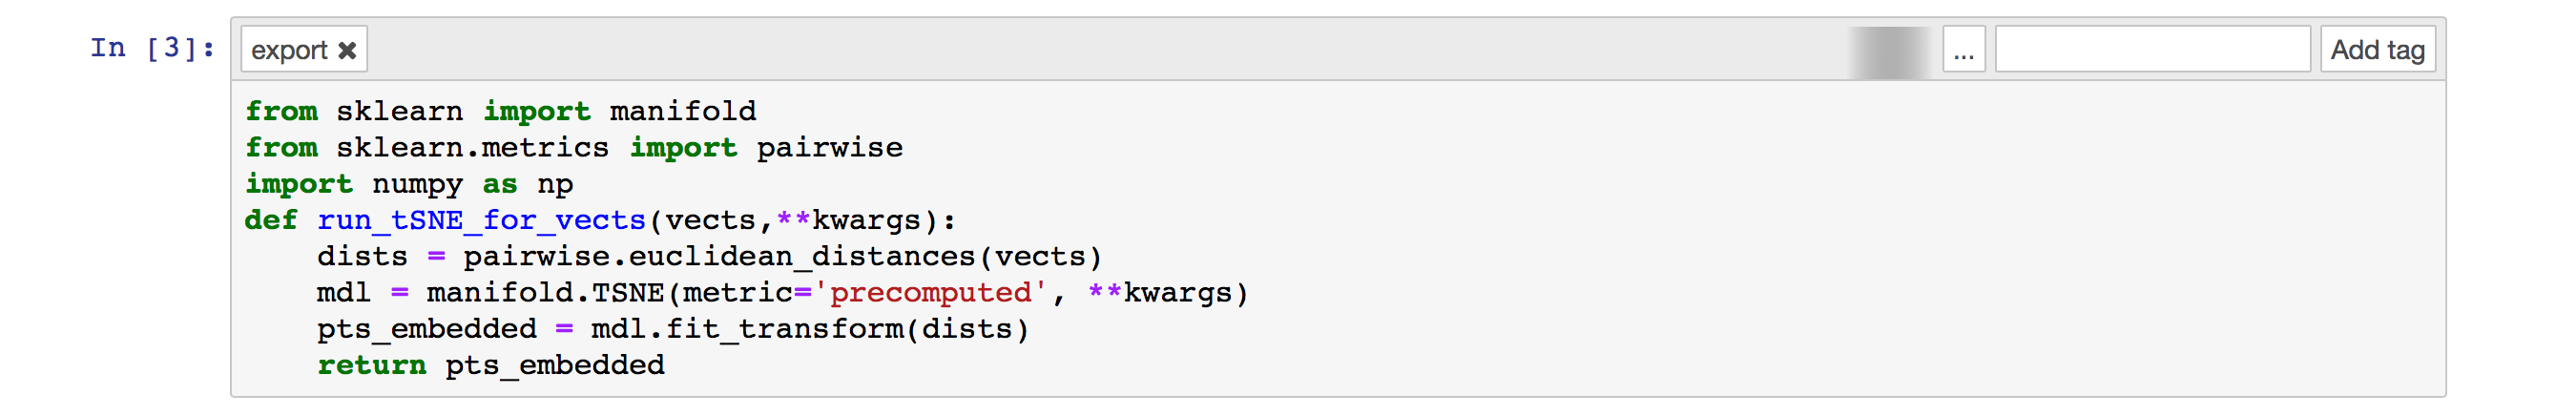 Jupyter cell defining the Python function we'll use from within KNIME Analytics Platform